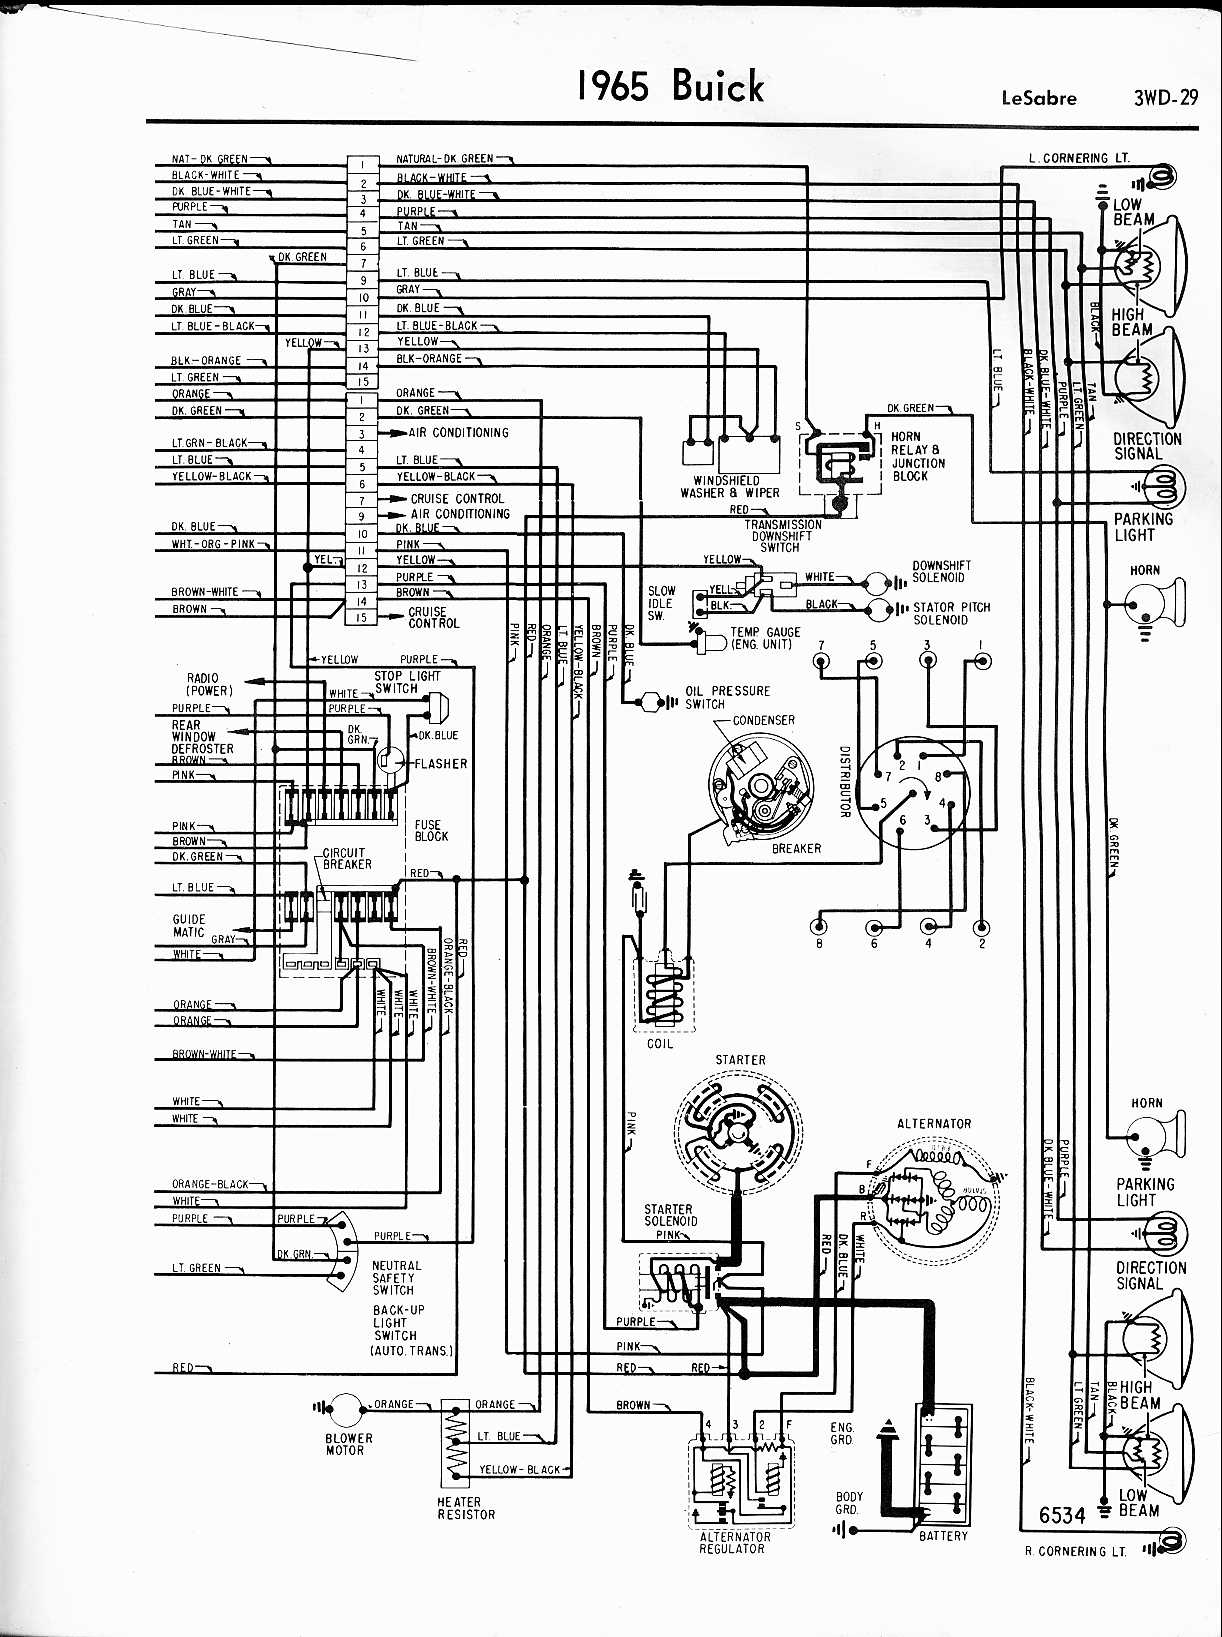 wiring diagram for 2000 buick lesabre the wiring diagram buick lesabre wiring harness buick wiring diagrams for car wiring diagram